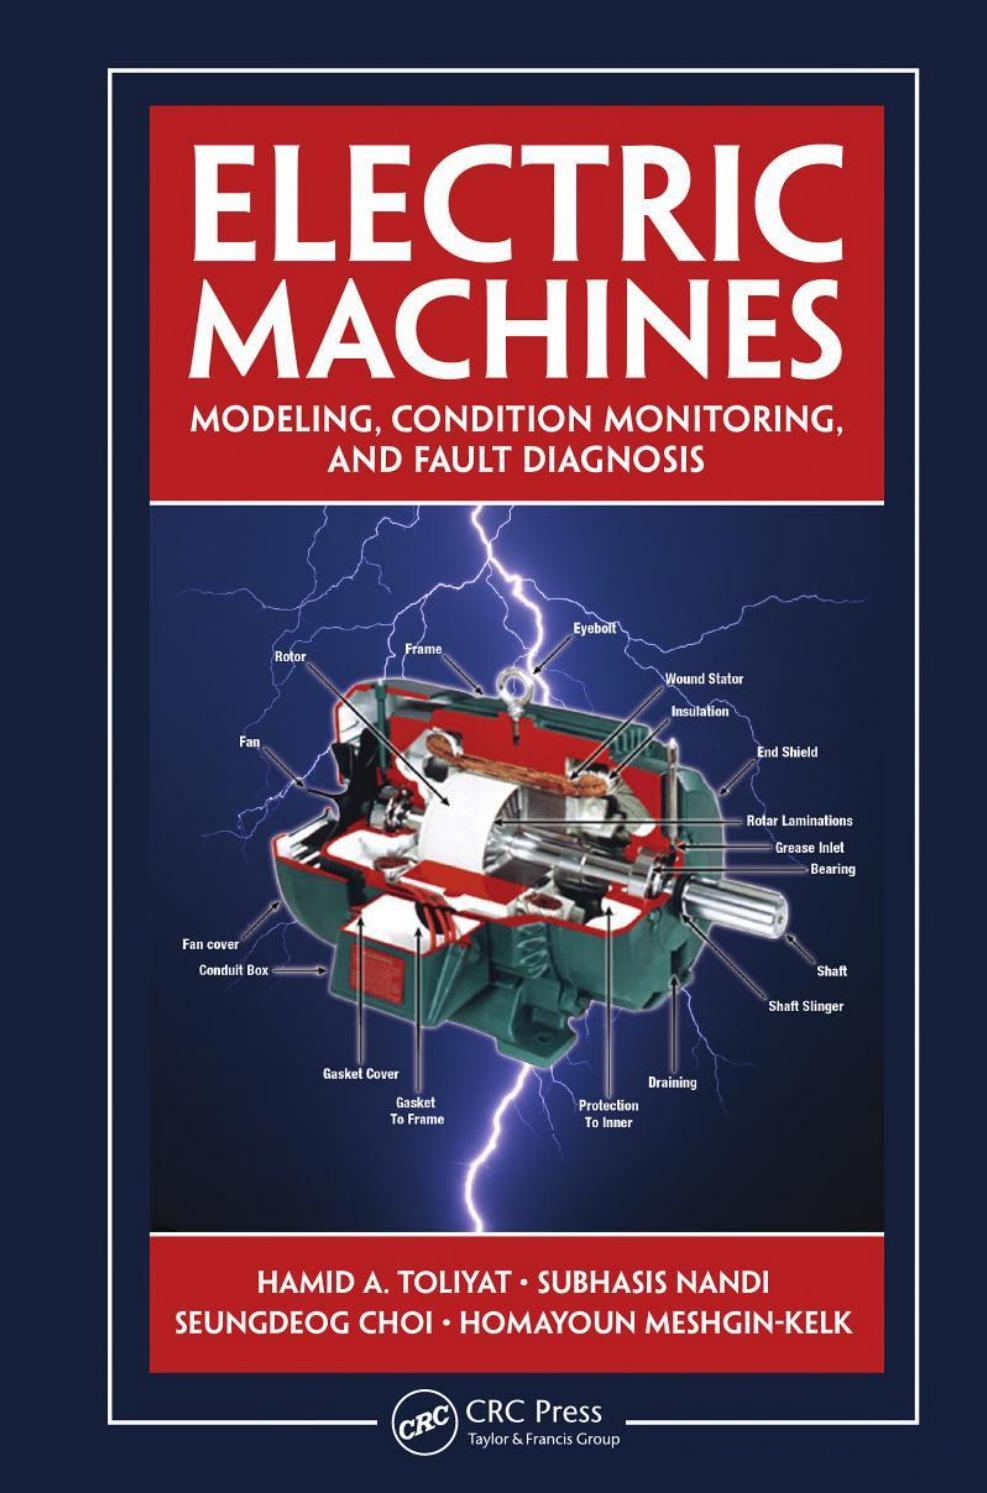 Electric Machines Modeling, Condition Monitoring and Fault Diagnosis